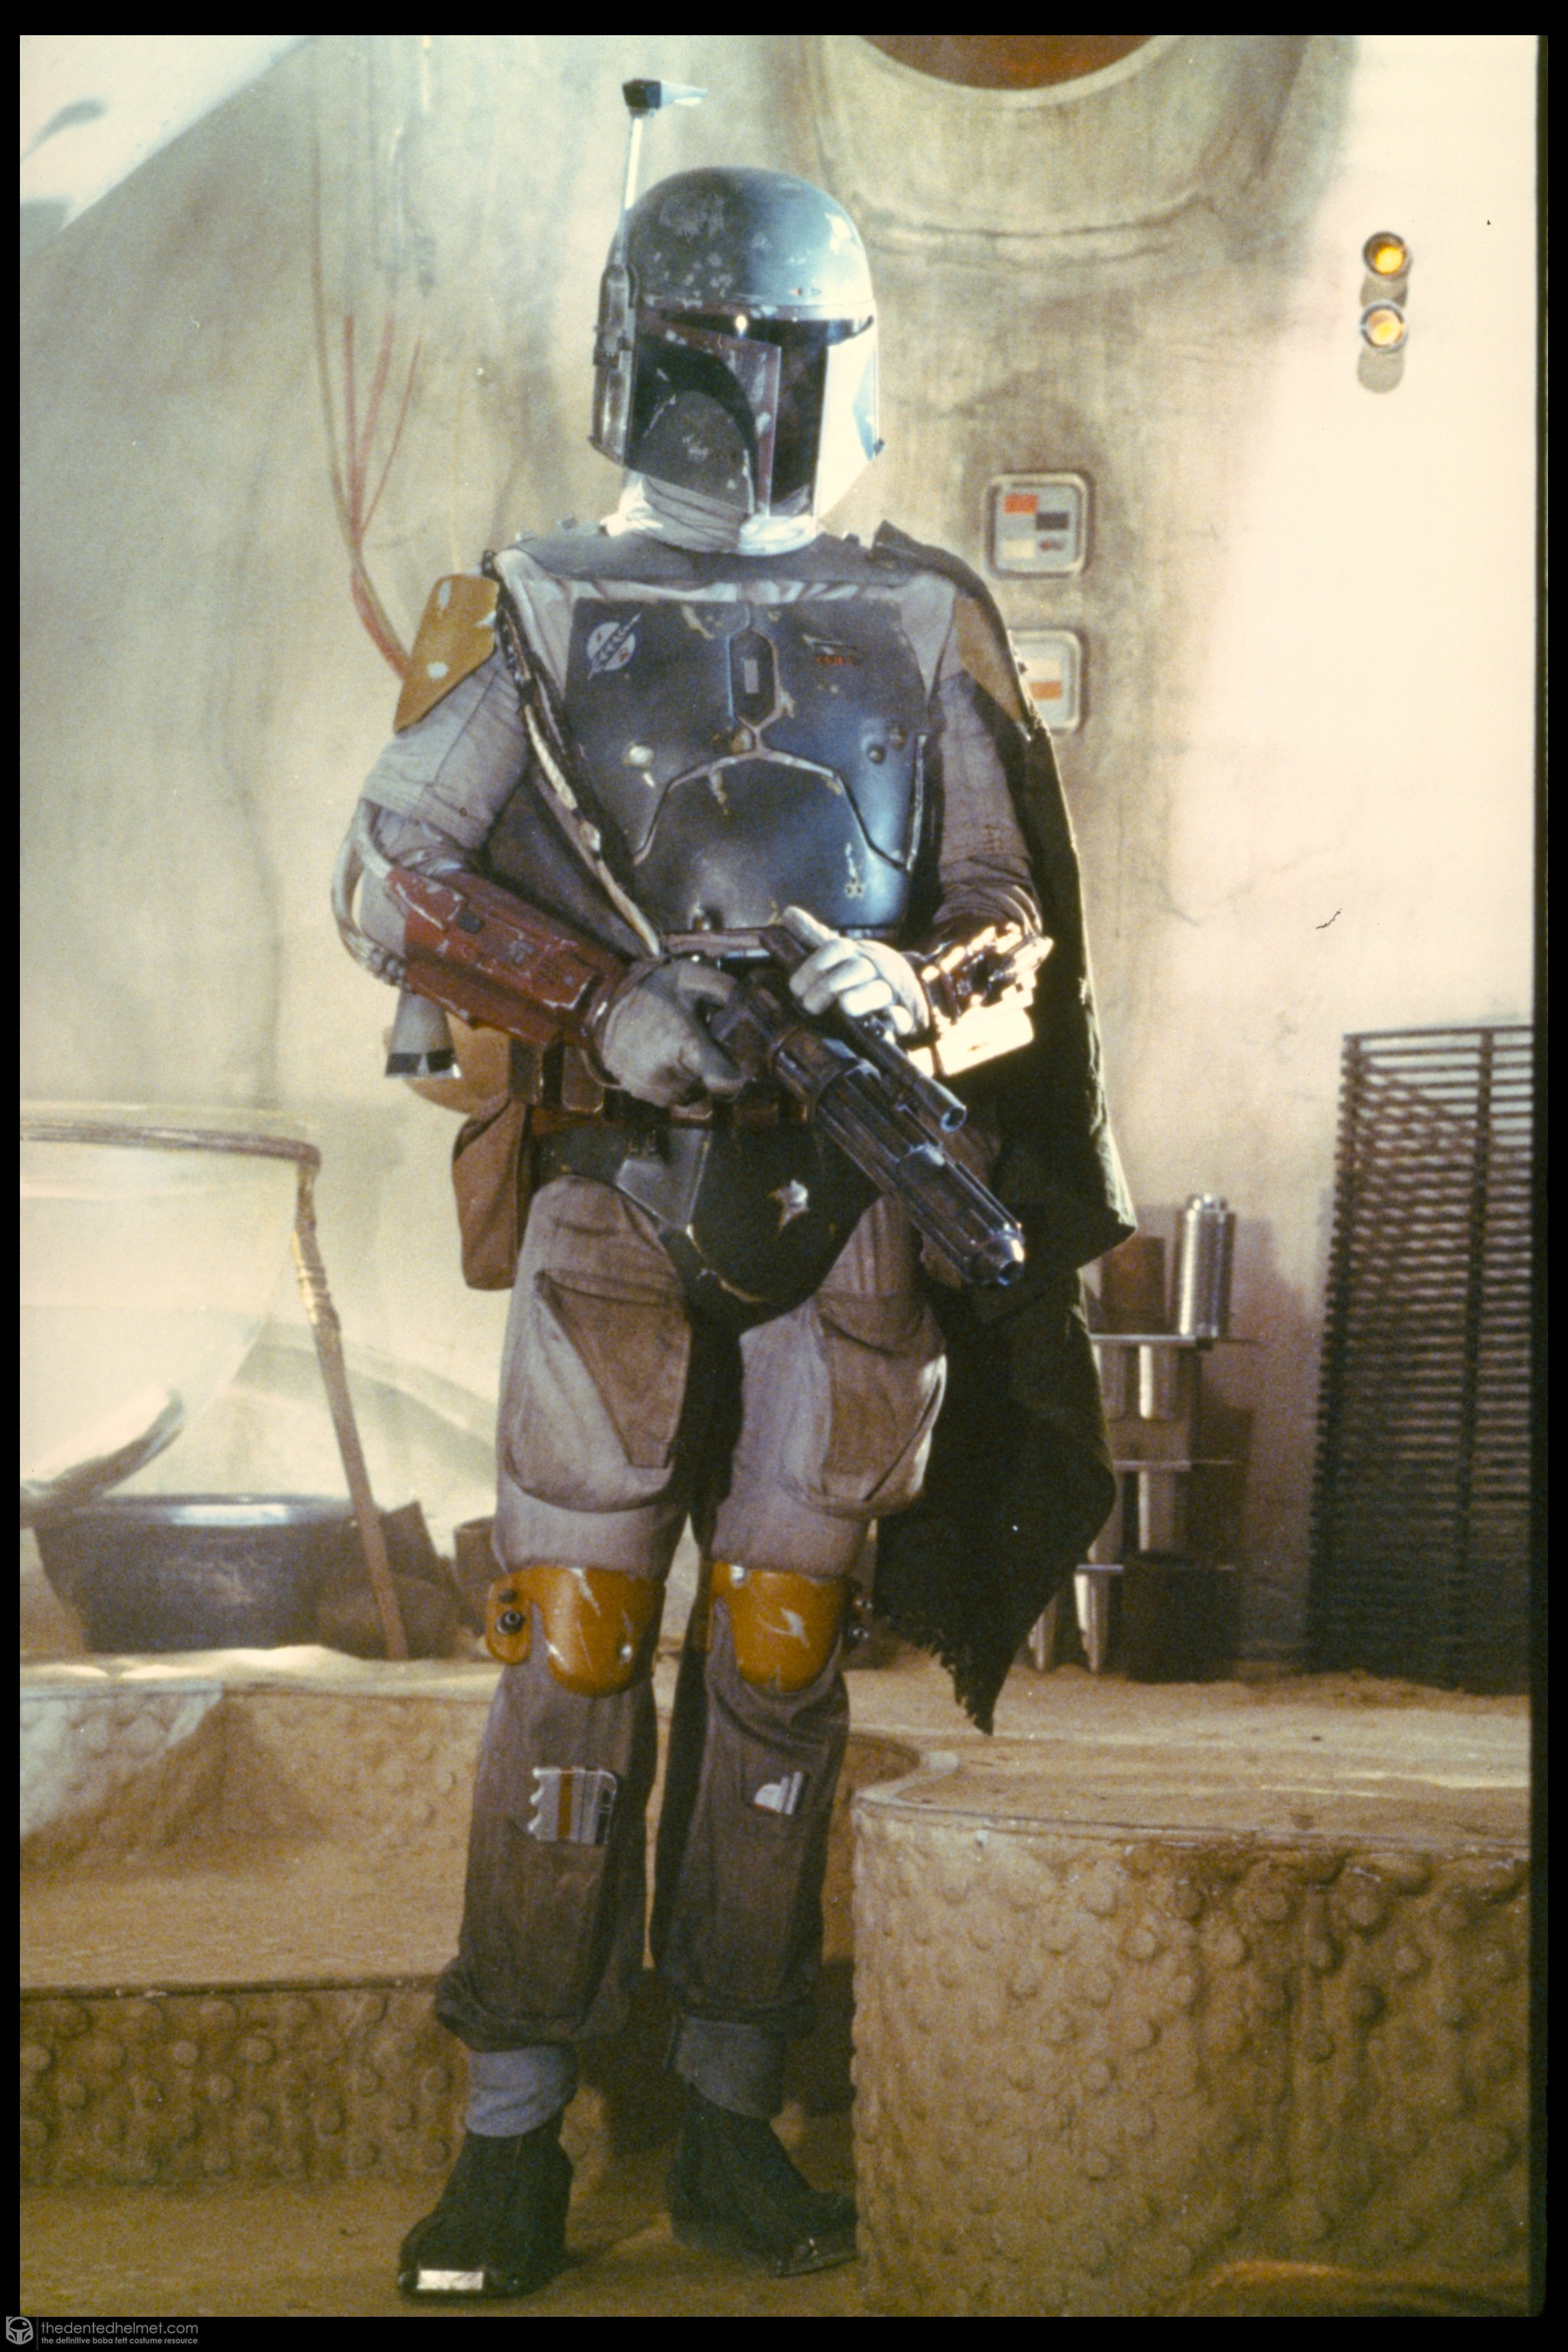 Boba-Fett-Costume-Return-of-the-Jedi-Jabba-02.jpg